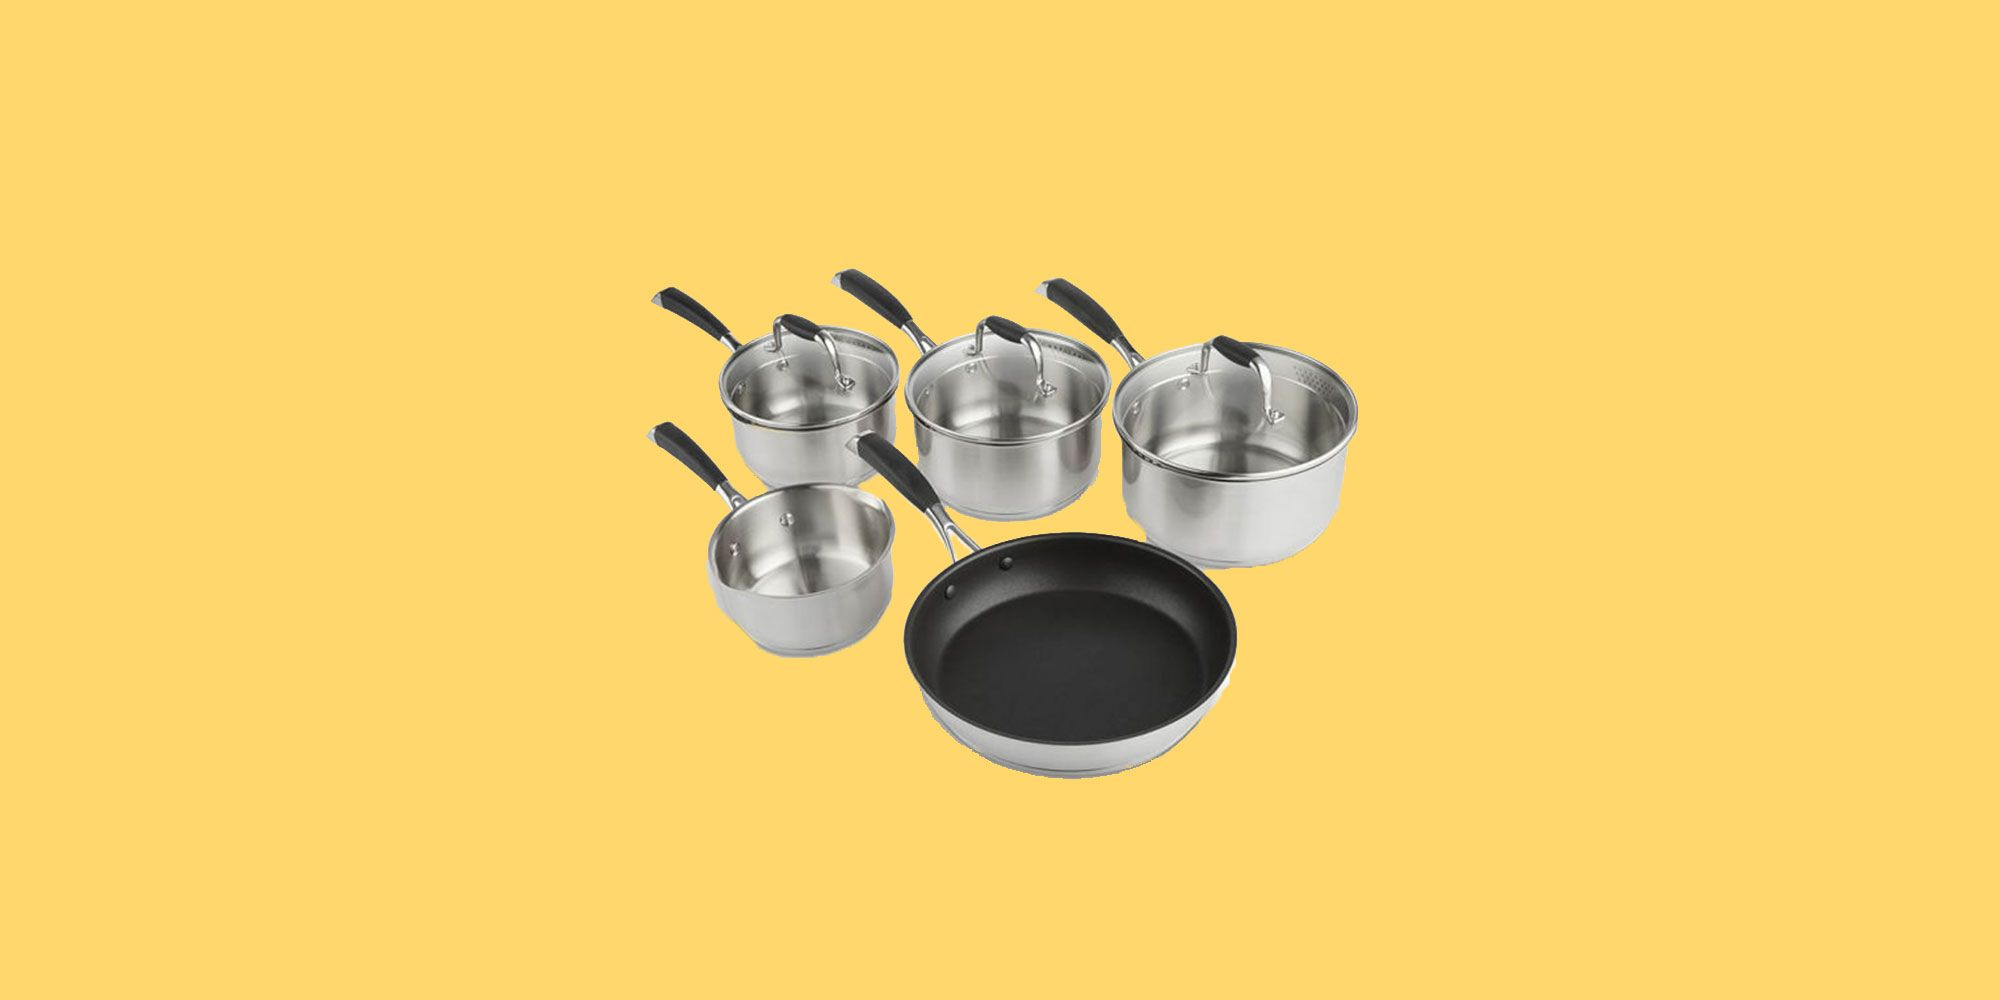 VonShef Stainless Steel Stove Top